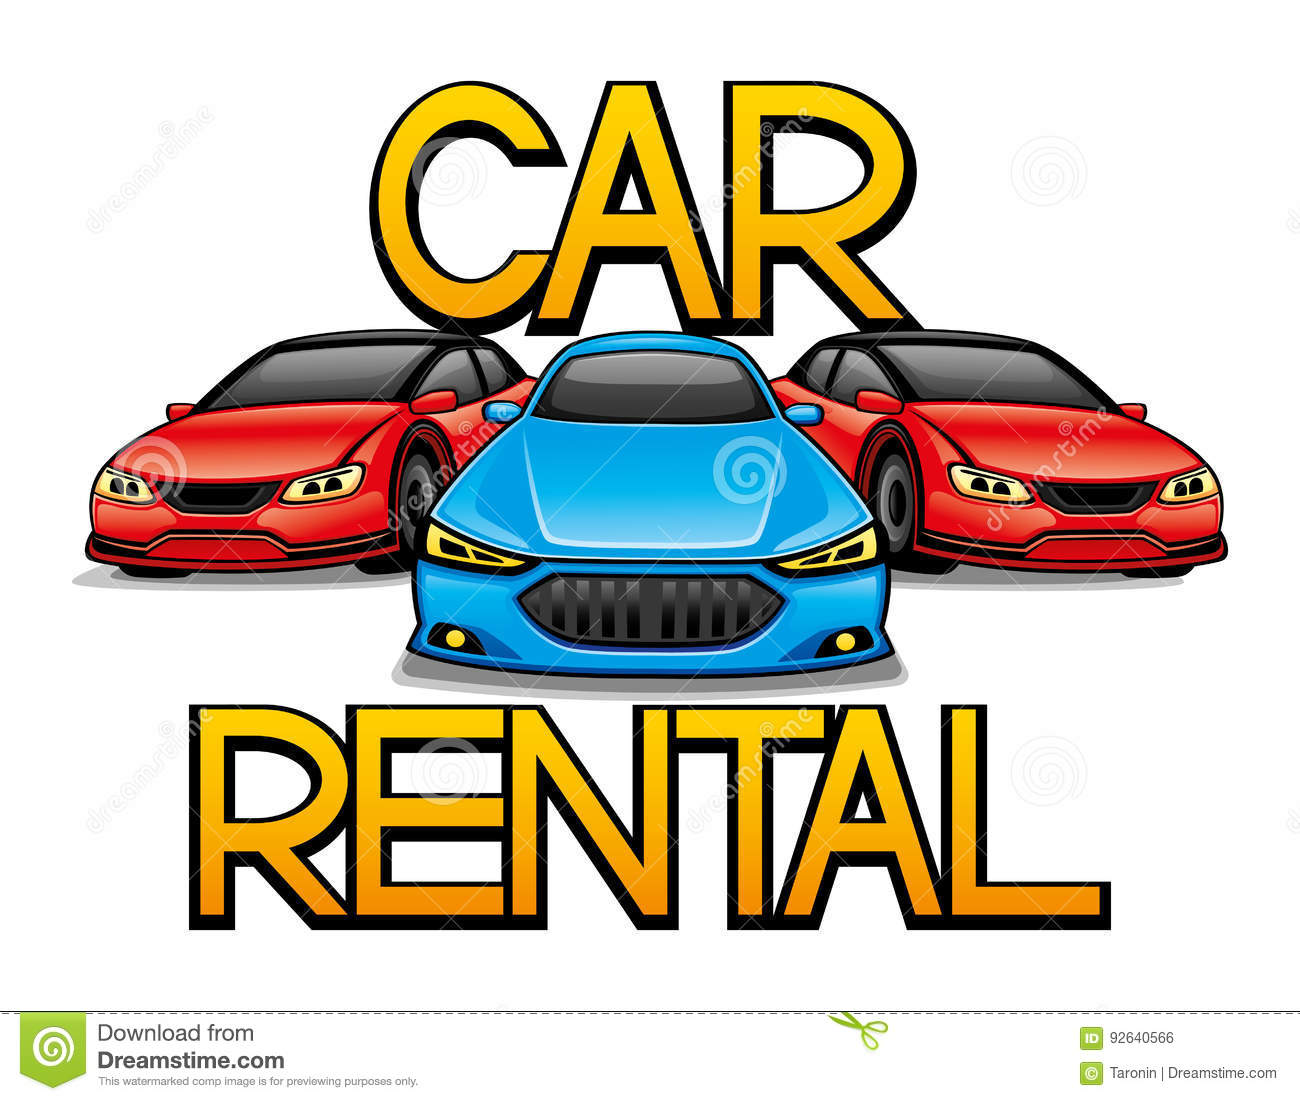 Sign Of Car Rental Stock Vector Illustration Of Icon 92640566